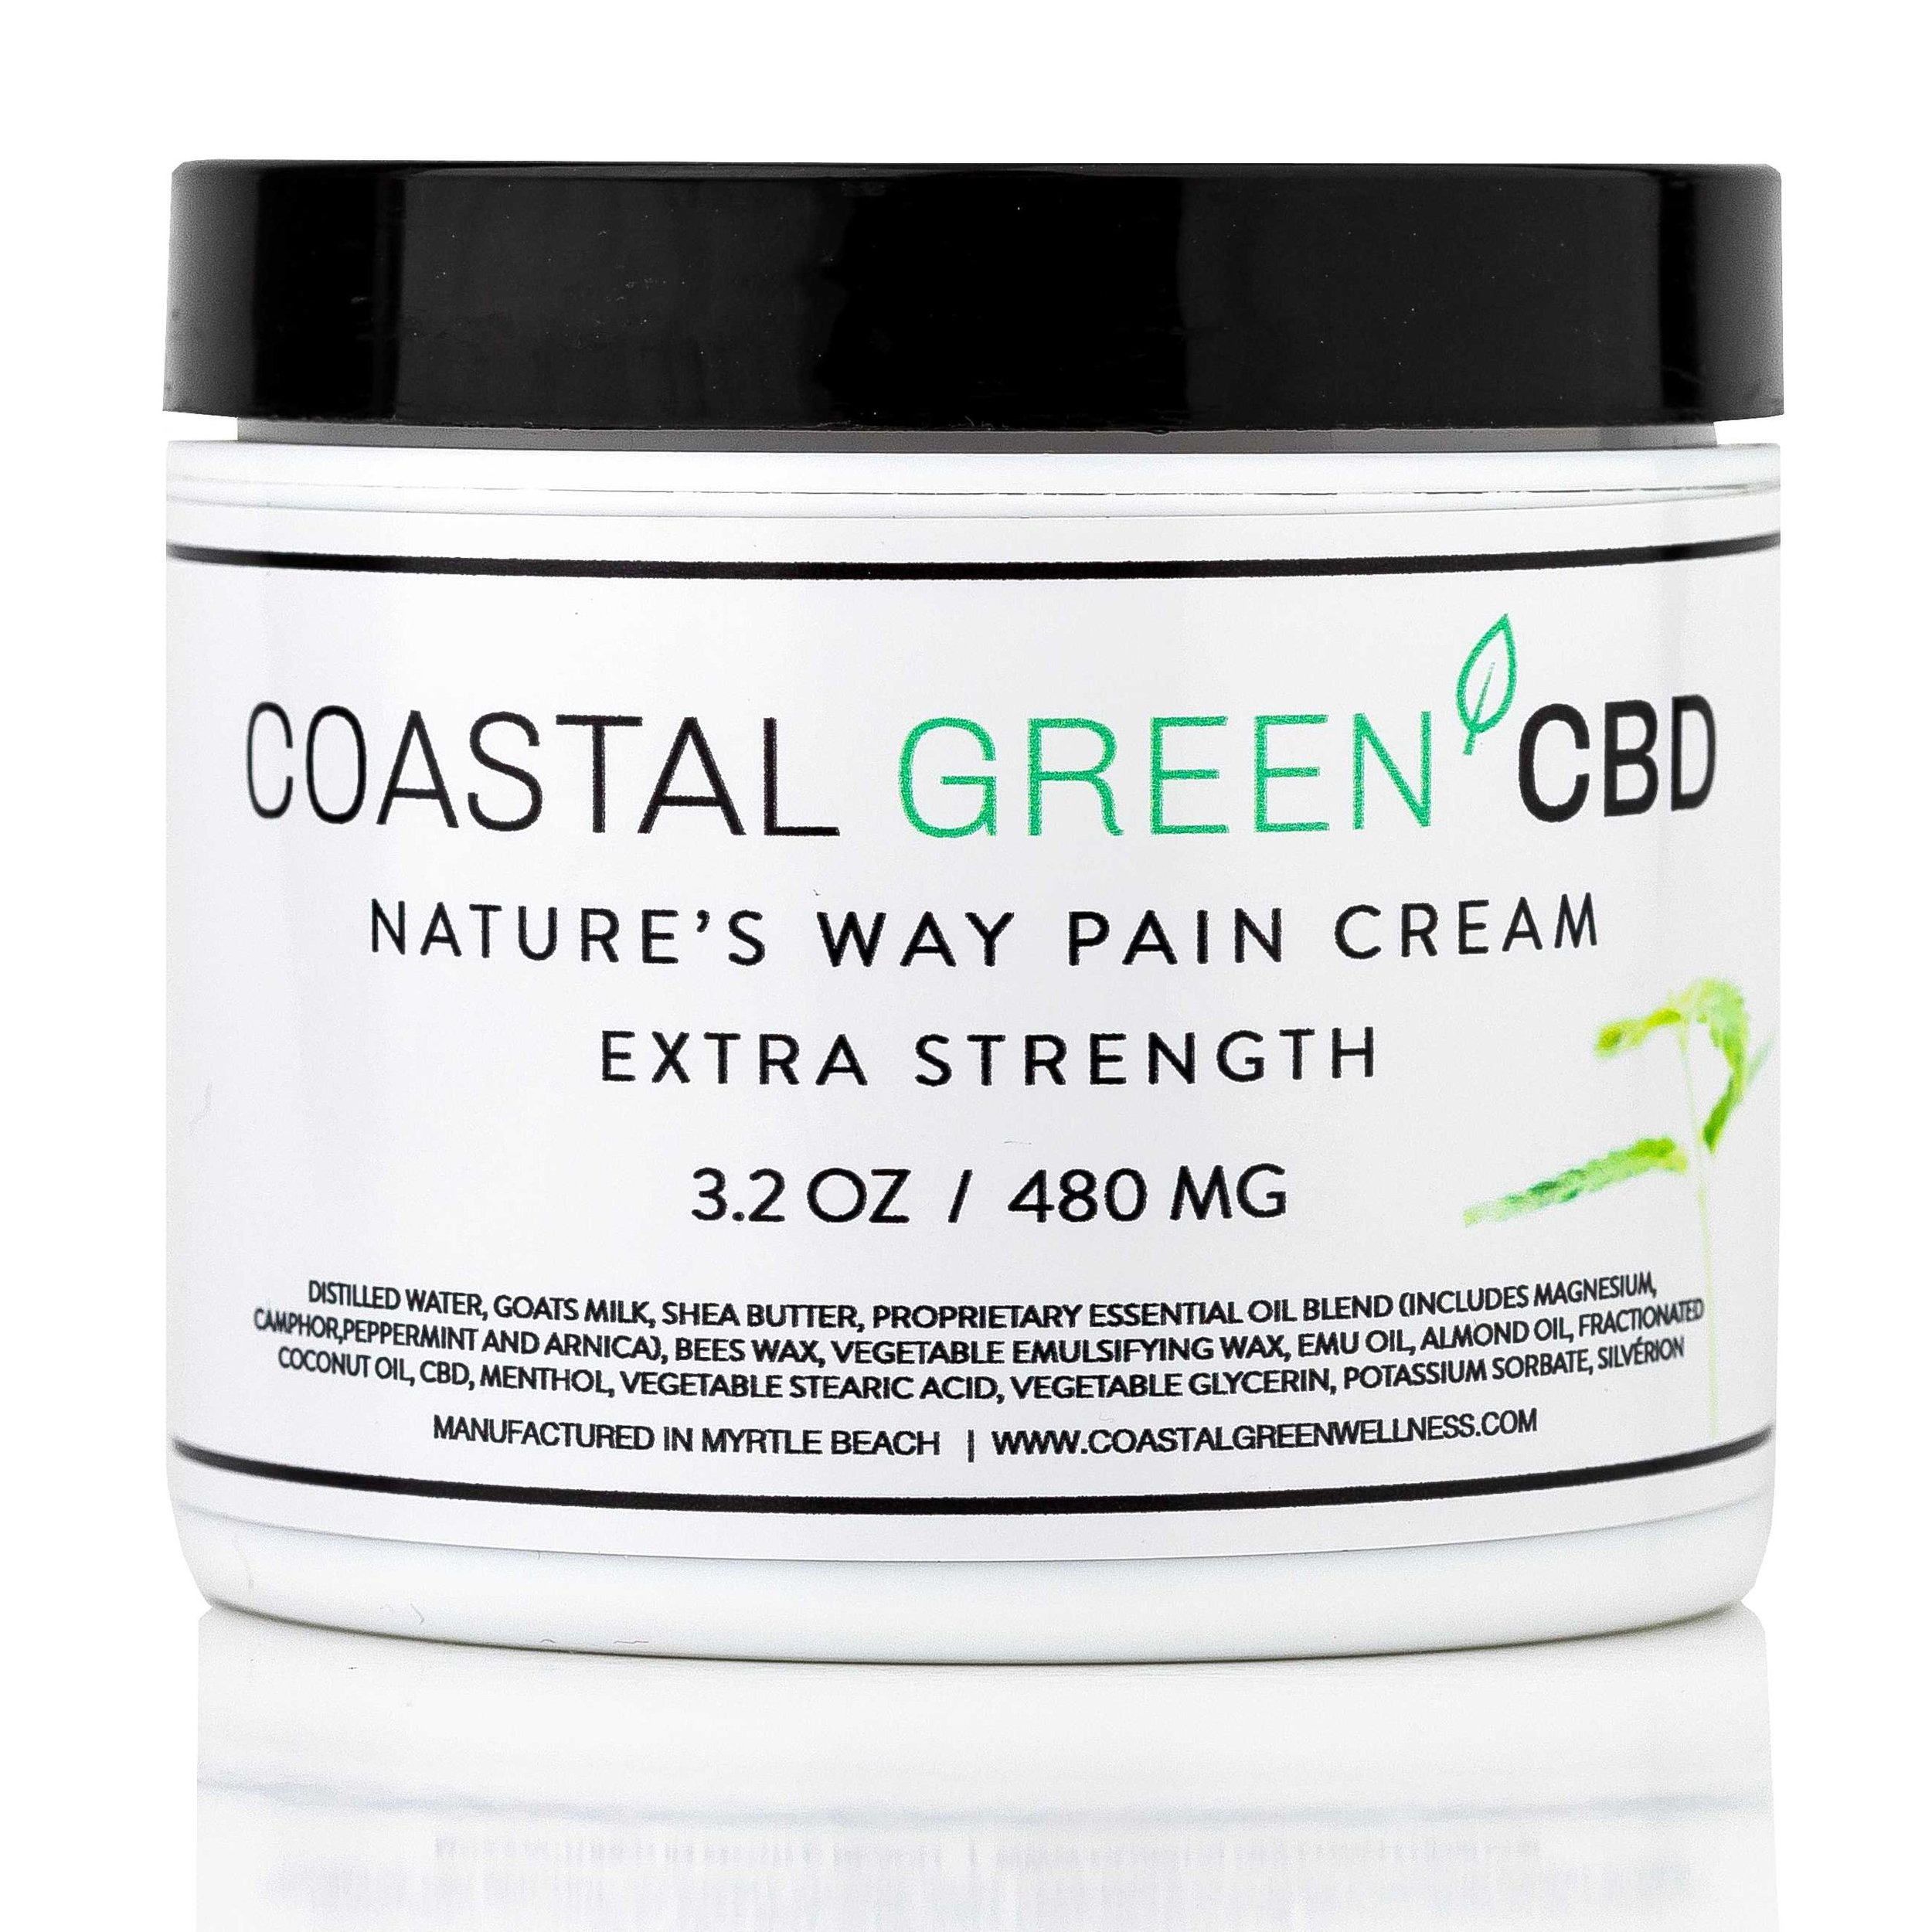 Nature's Way Pain Cream Extra Strength — The Mustard Seed